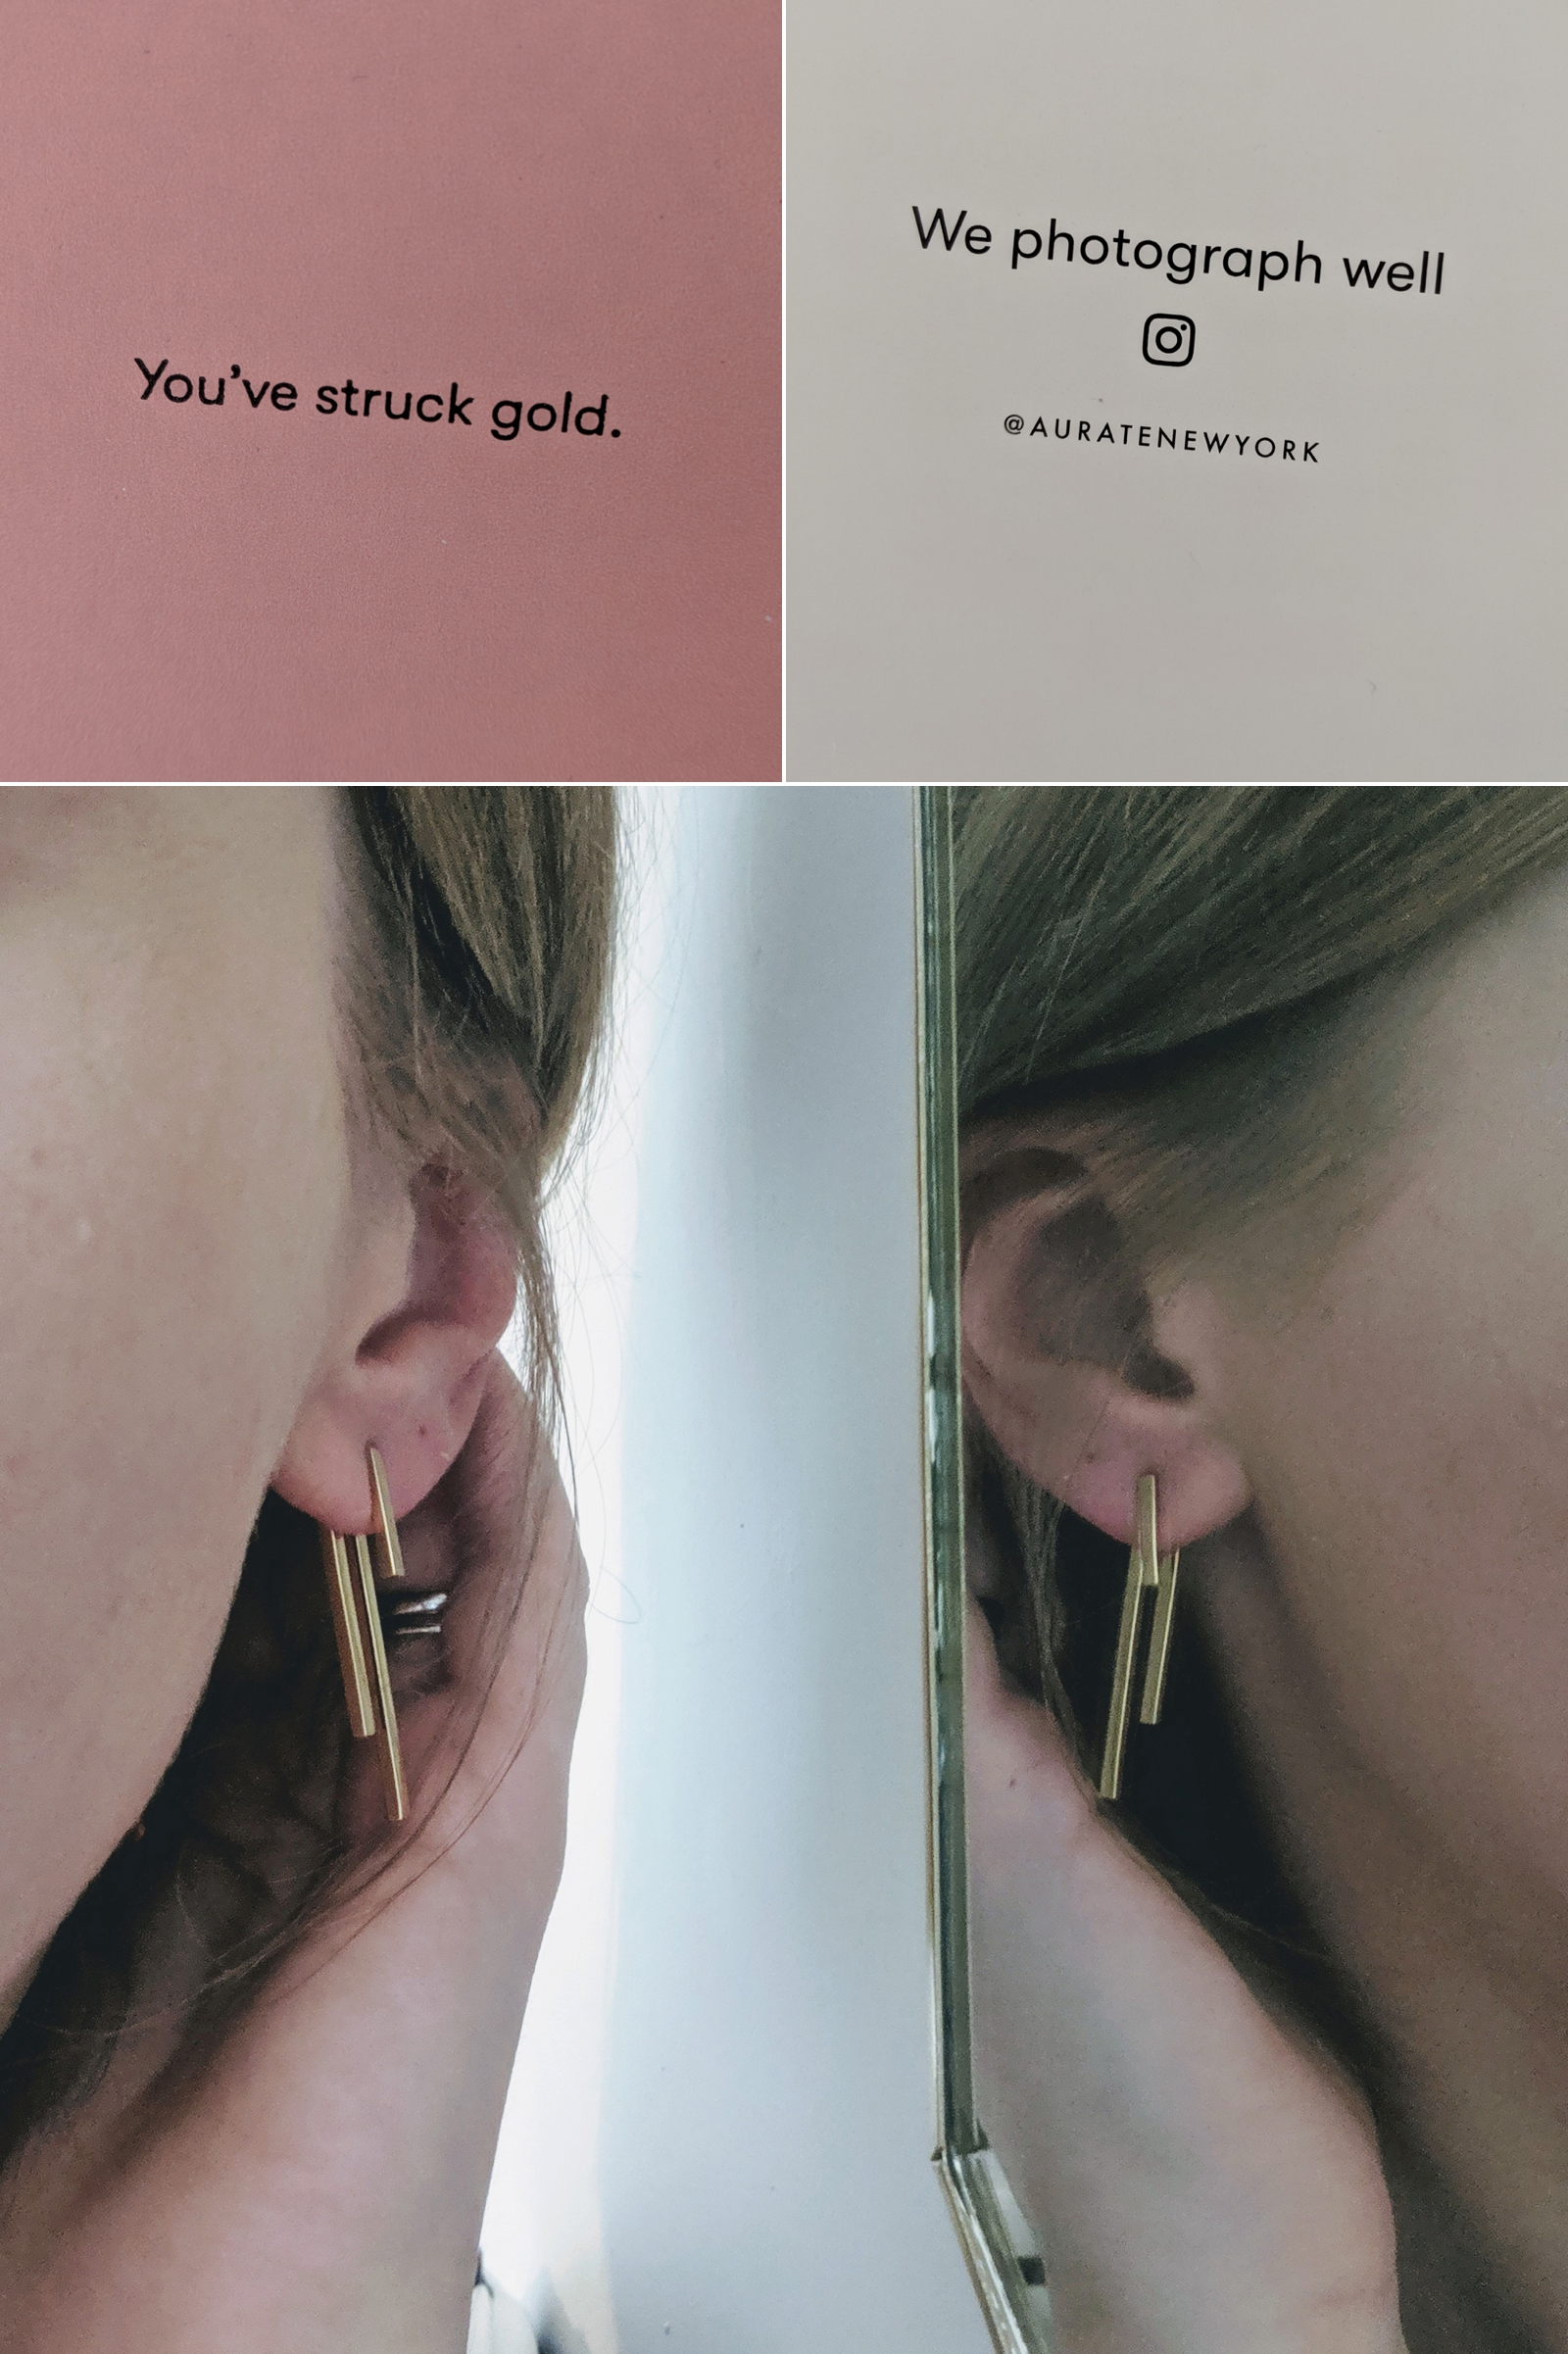 gold-earrings-au-rate